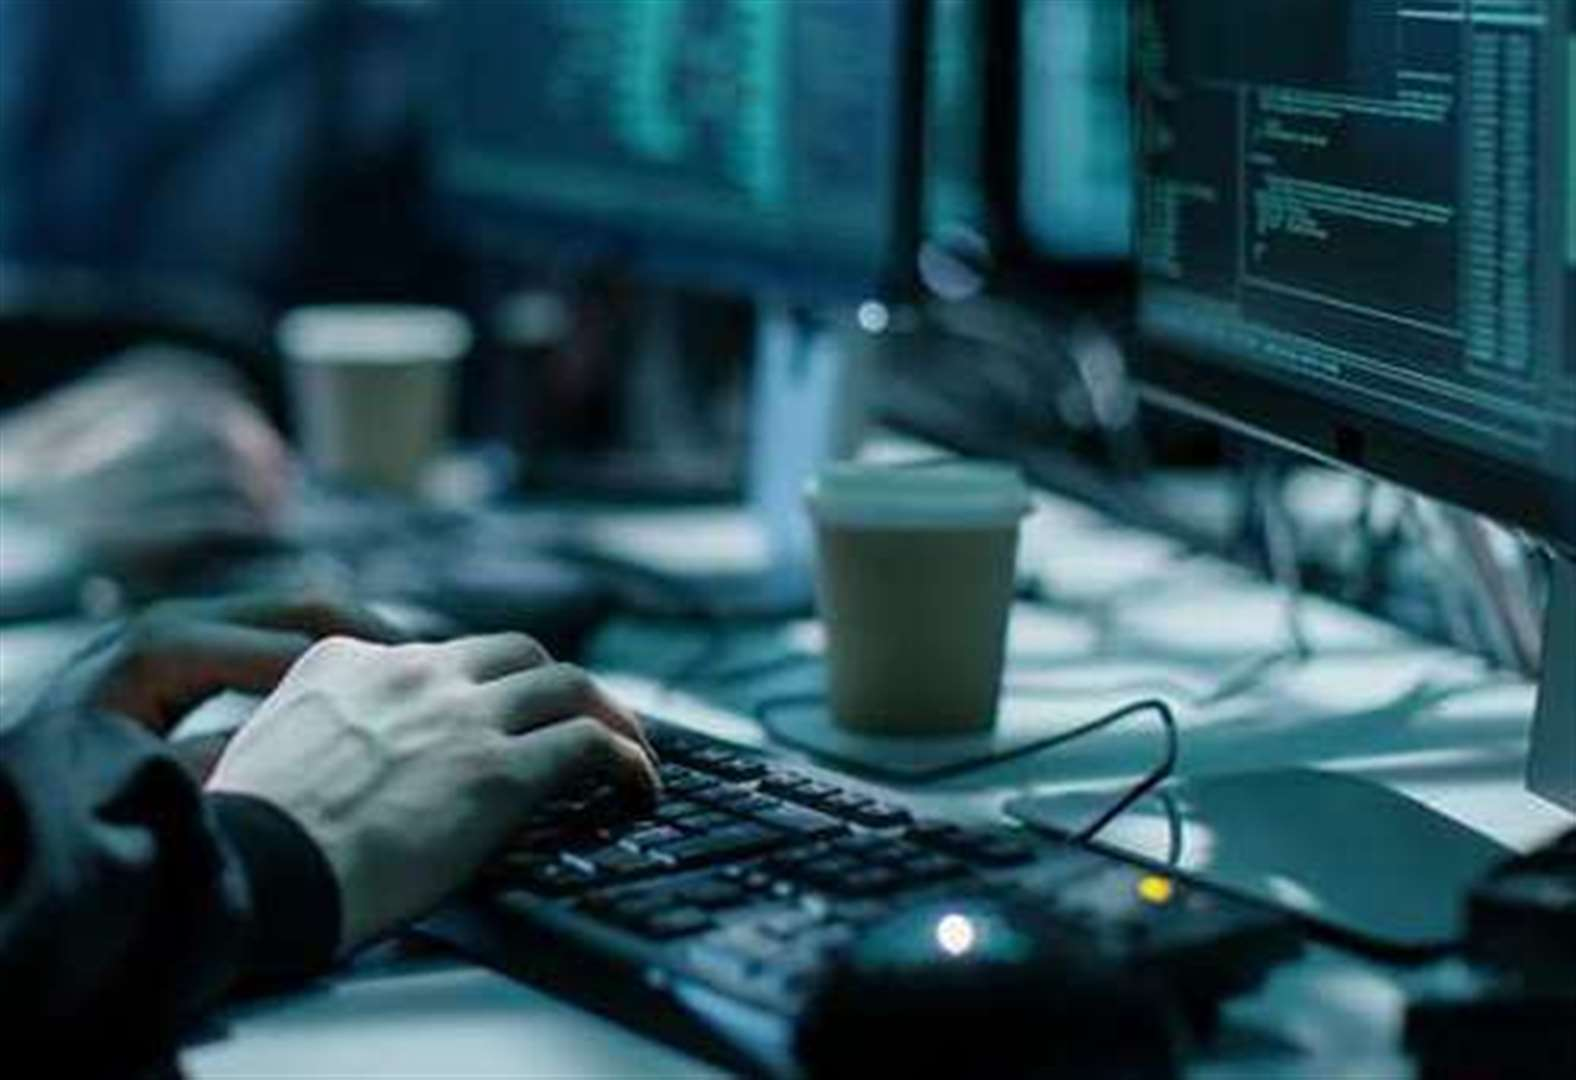 Cyber crime protection across south east rising